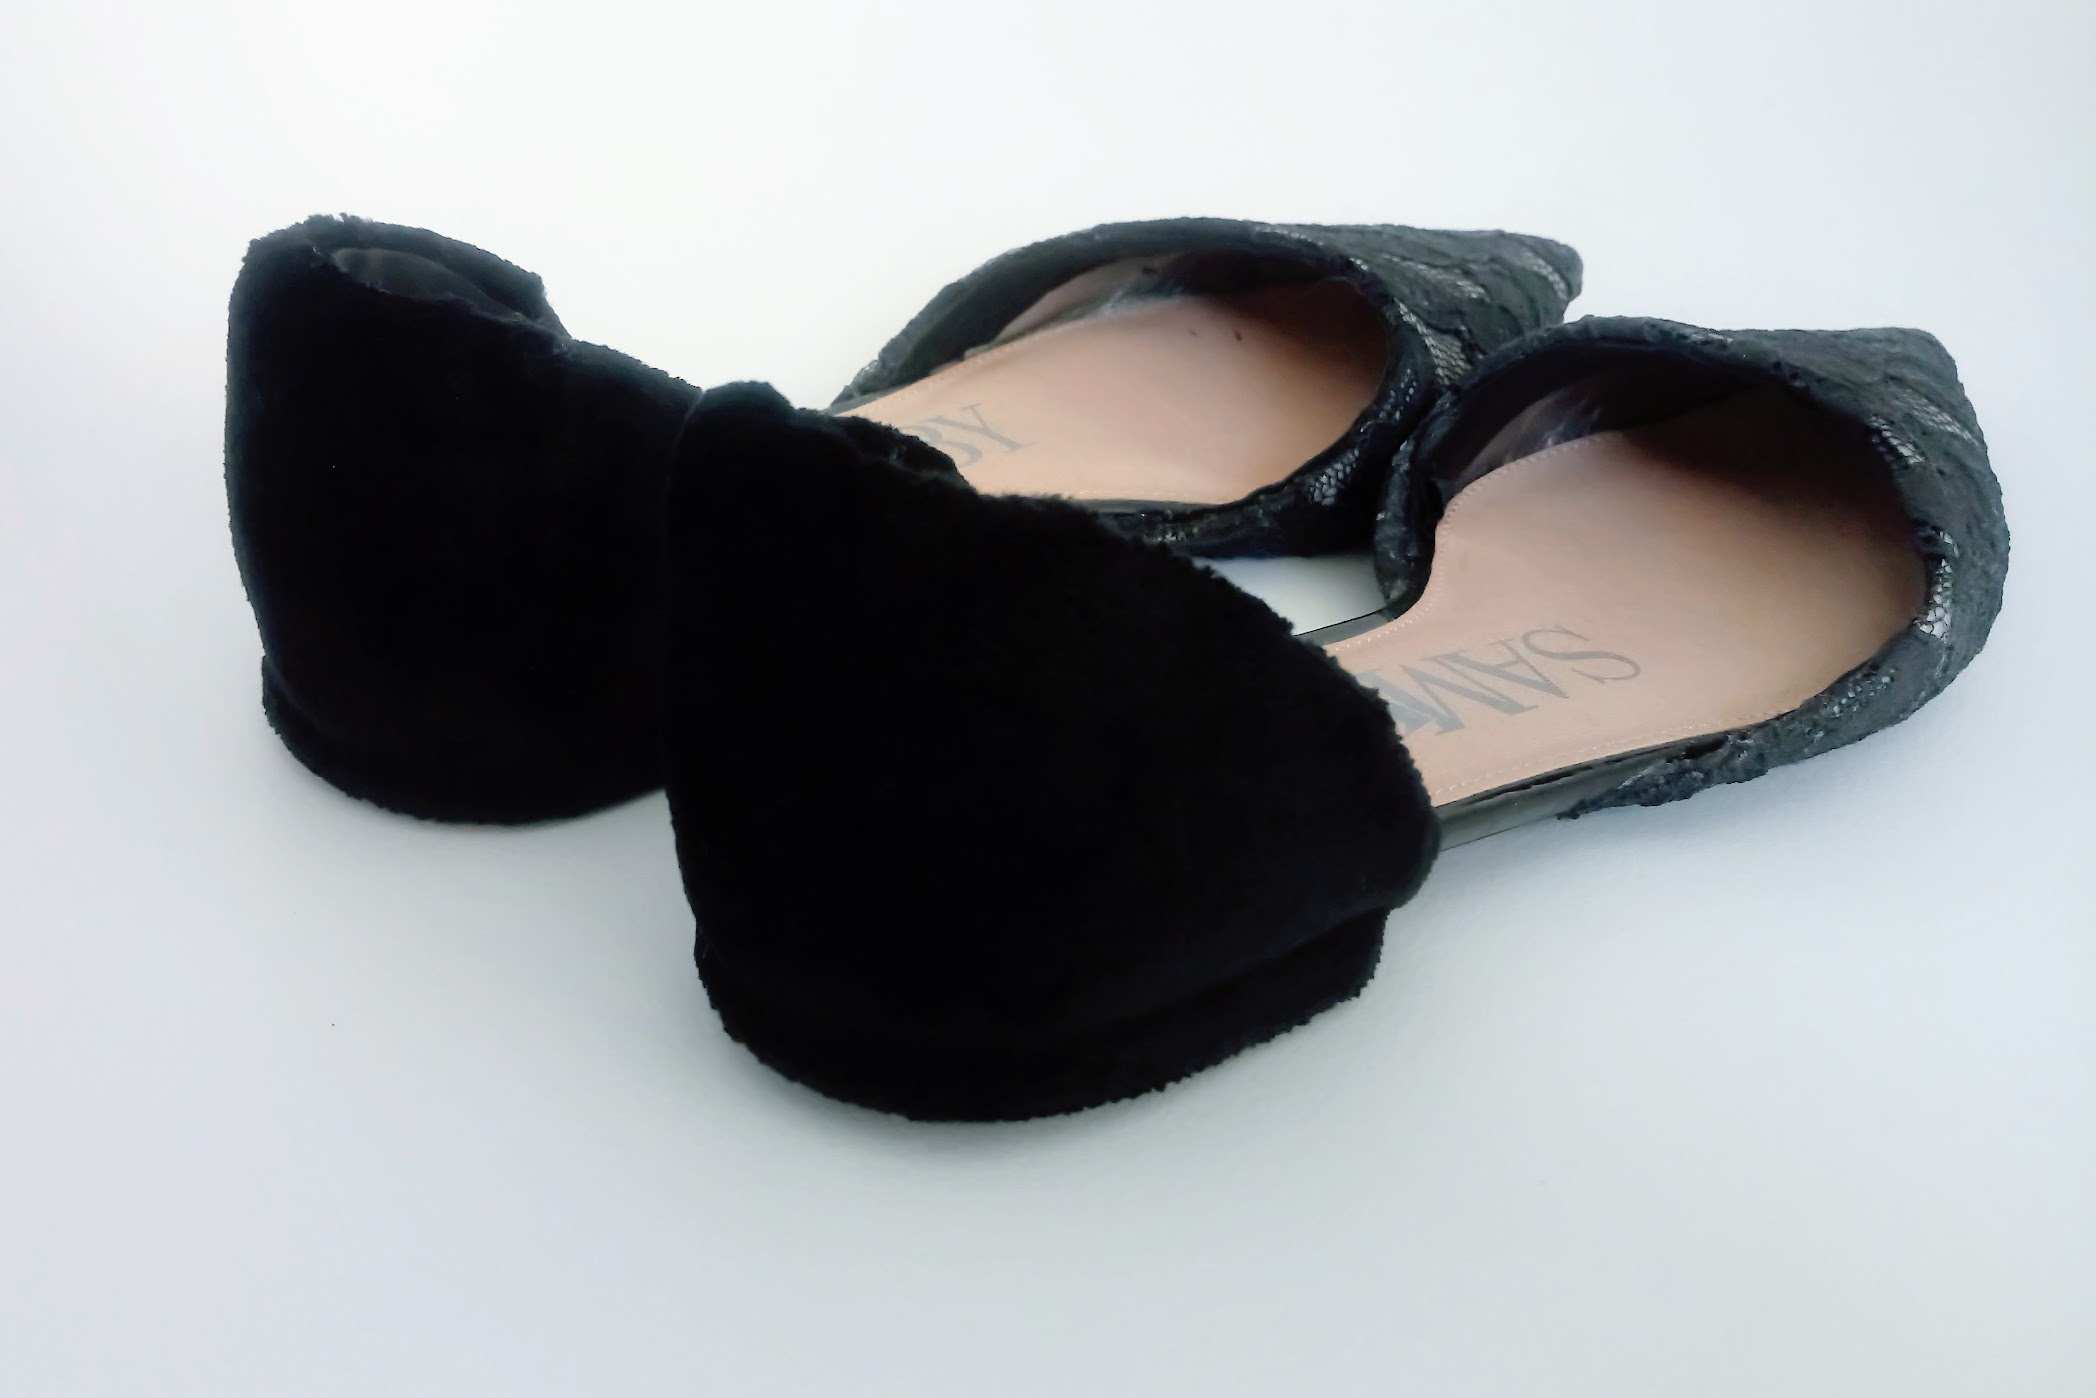 Lace Flats with Velvet Detail - DIY Fashion project   fafafoom.com